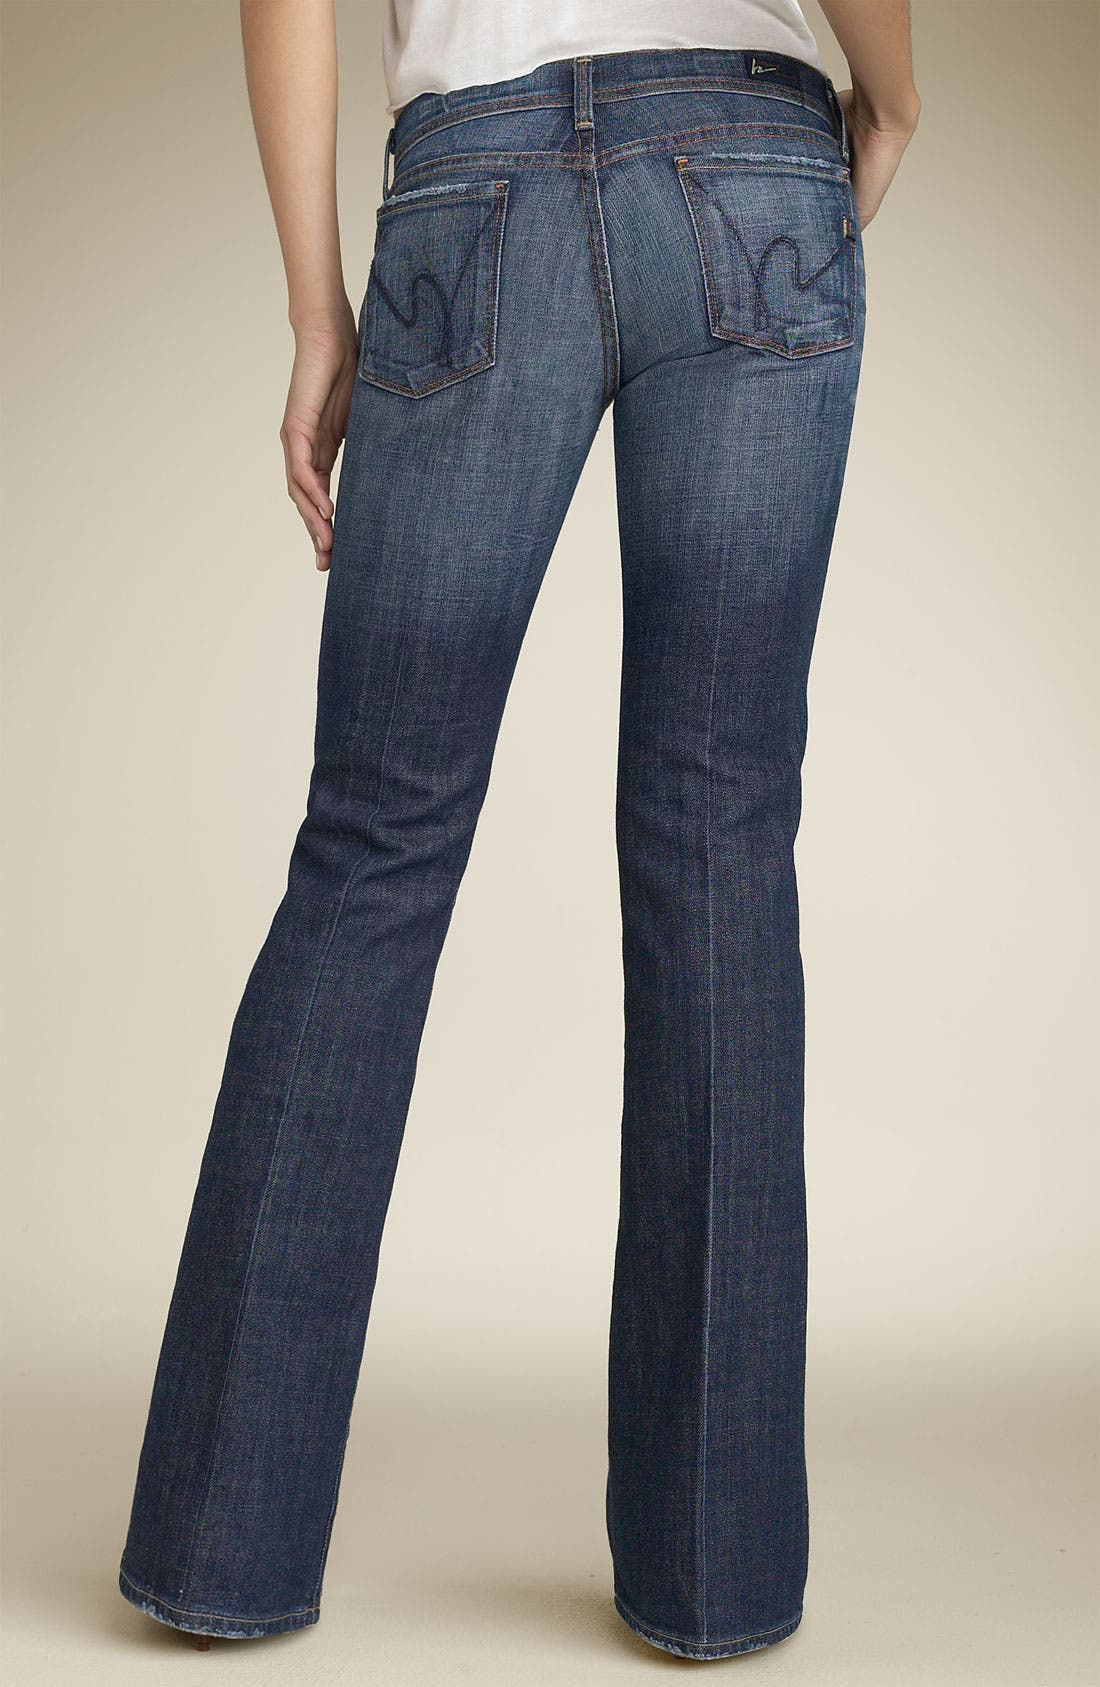 Main Image - Citizens of Humanity 'Ingrid' Stretch Jeans (Pacific Wash)